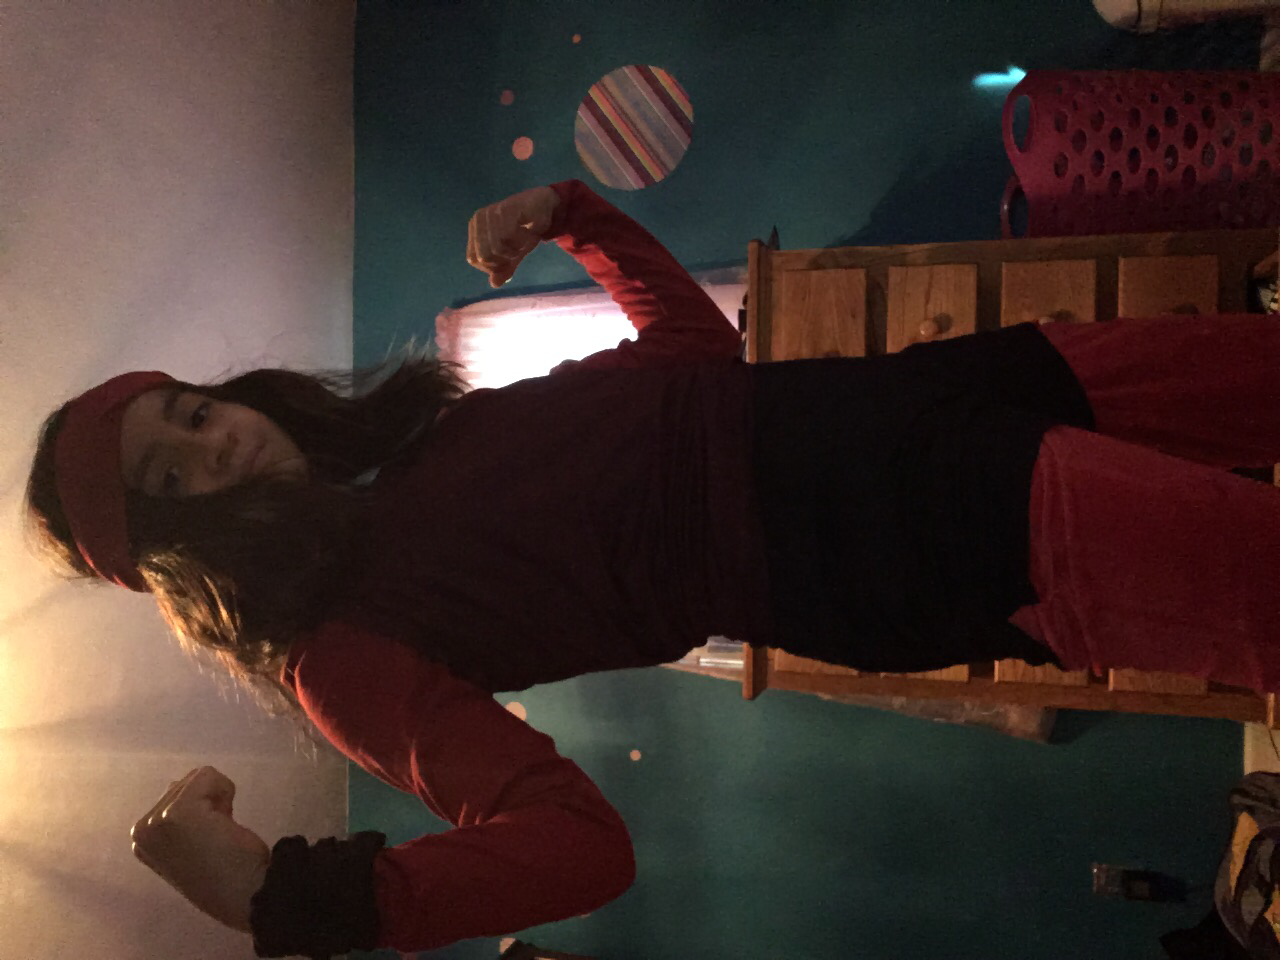 Ruby from Steven Universe cosplay feat. messy room XD (Don't ask why it's sideways lol)